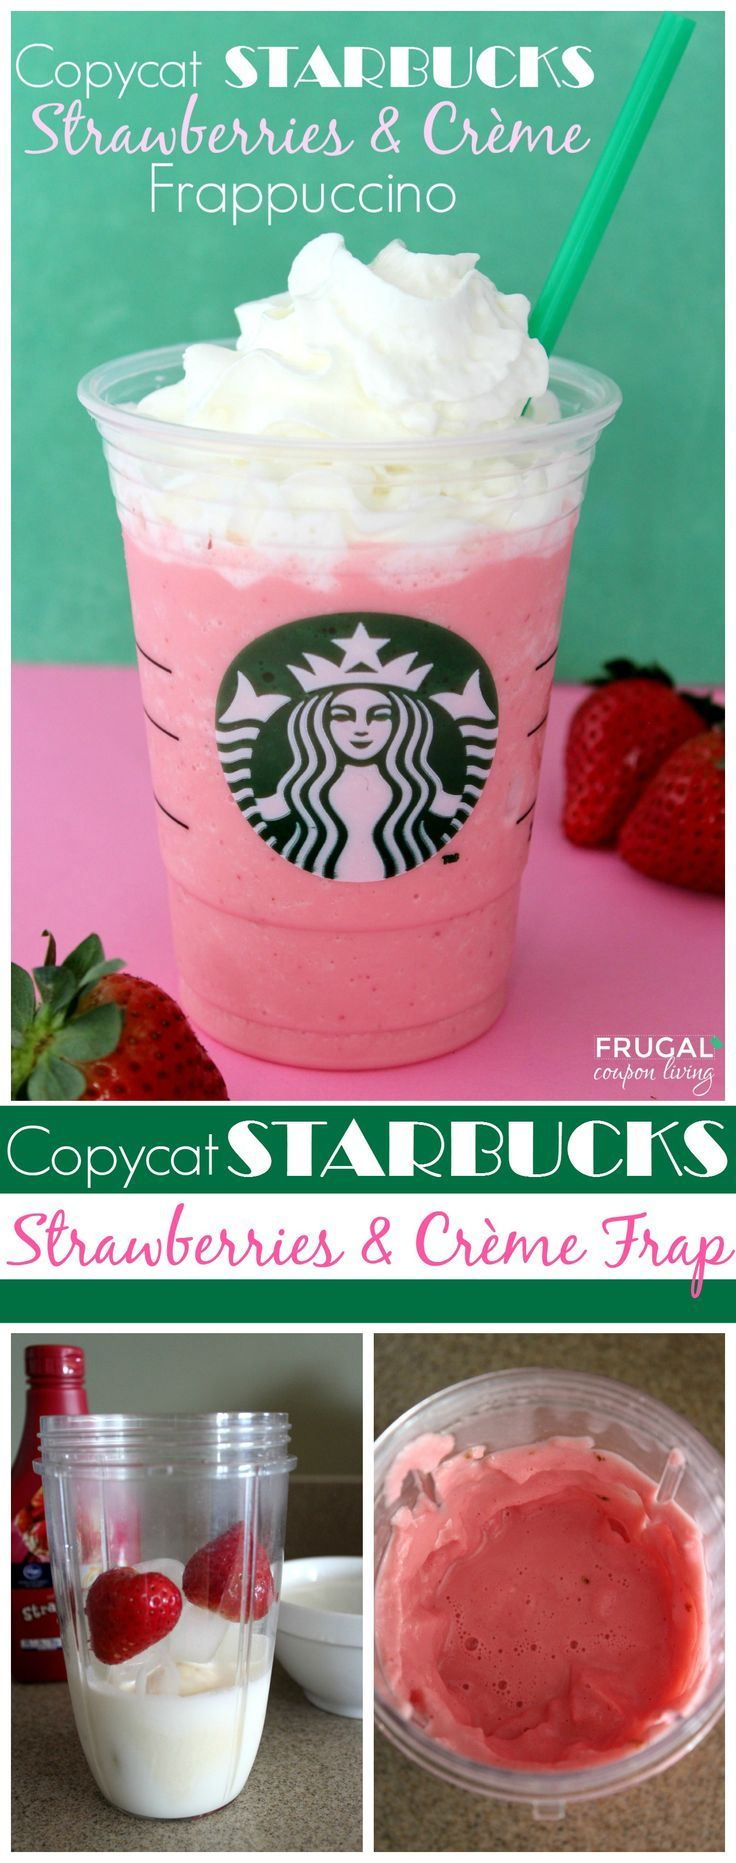 Copycat Starbucks Strawberries & Crème Frappuccino plus more Starbucks recipes on Frugal Coupon Living. #copycatrecipe #copycat